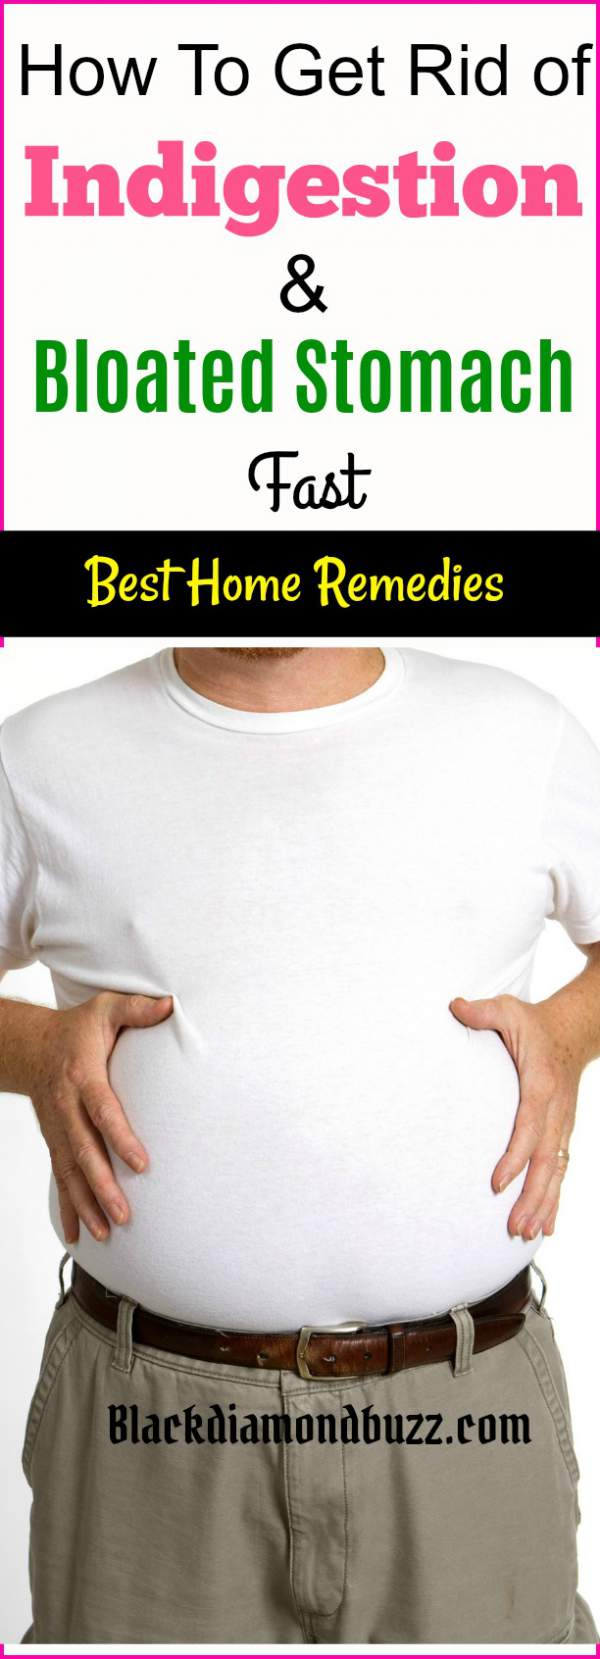 indigestion remedies- How to get rid of indigestion and bloated stomach fast__web